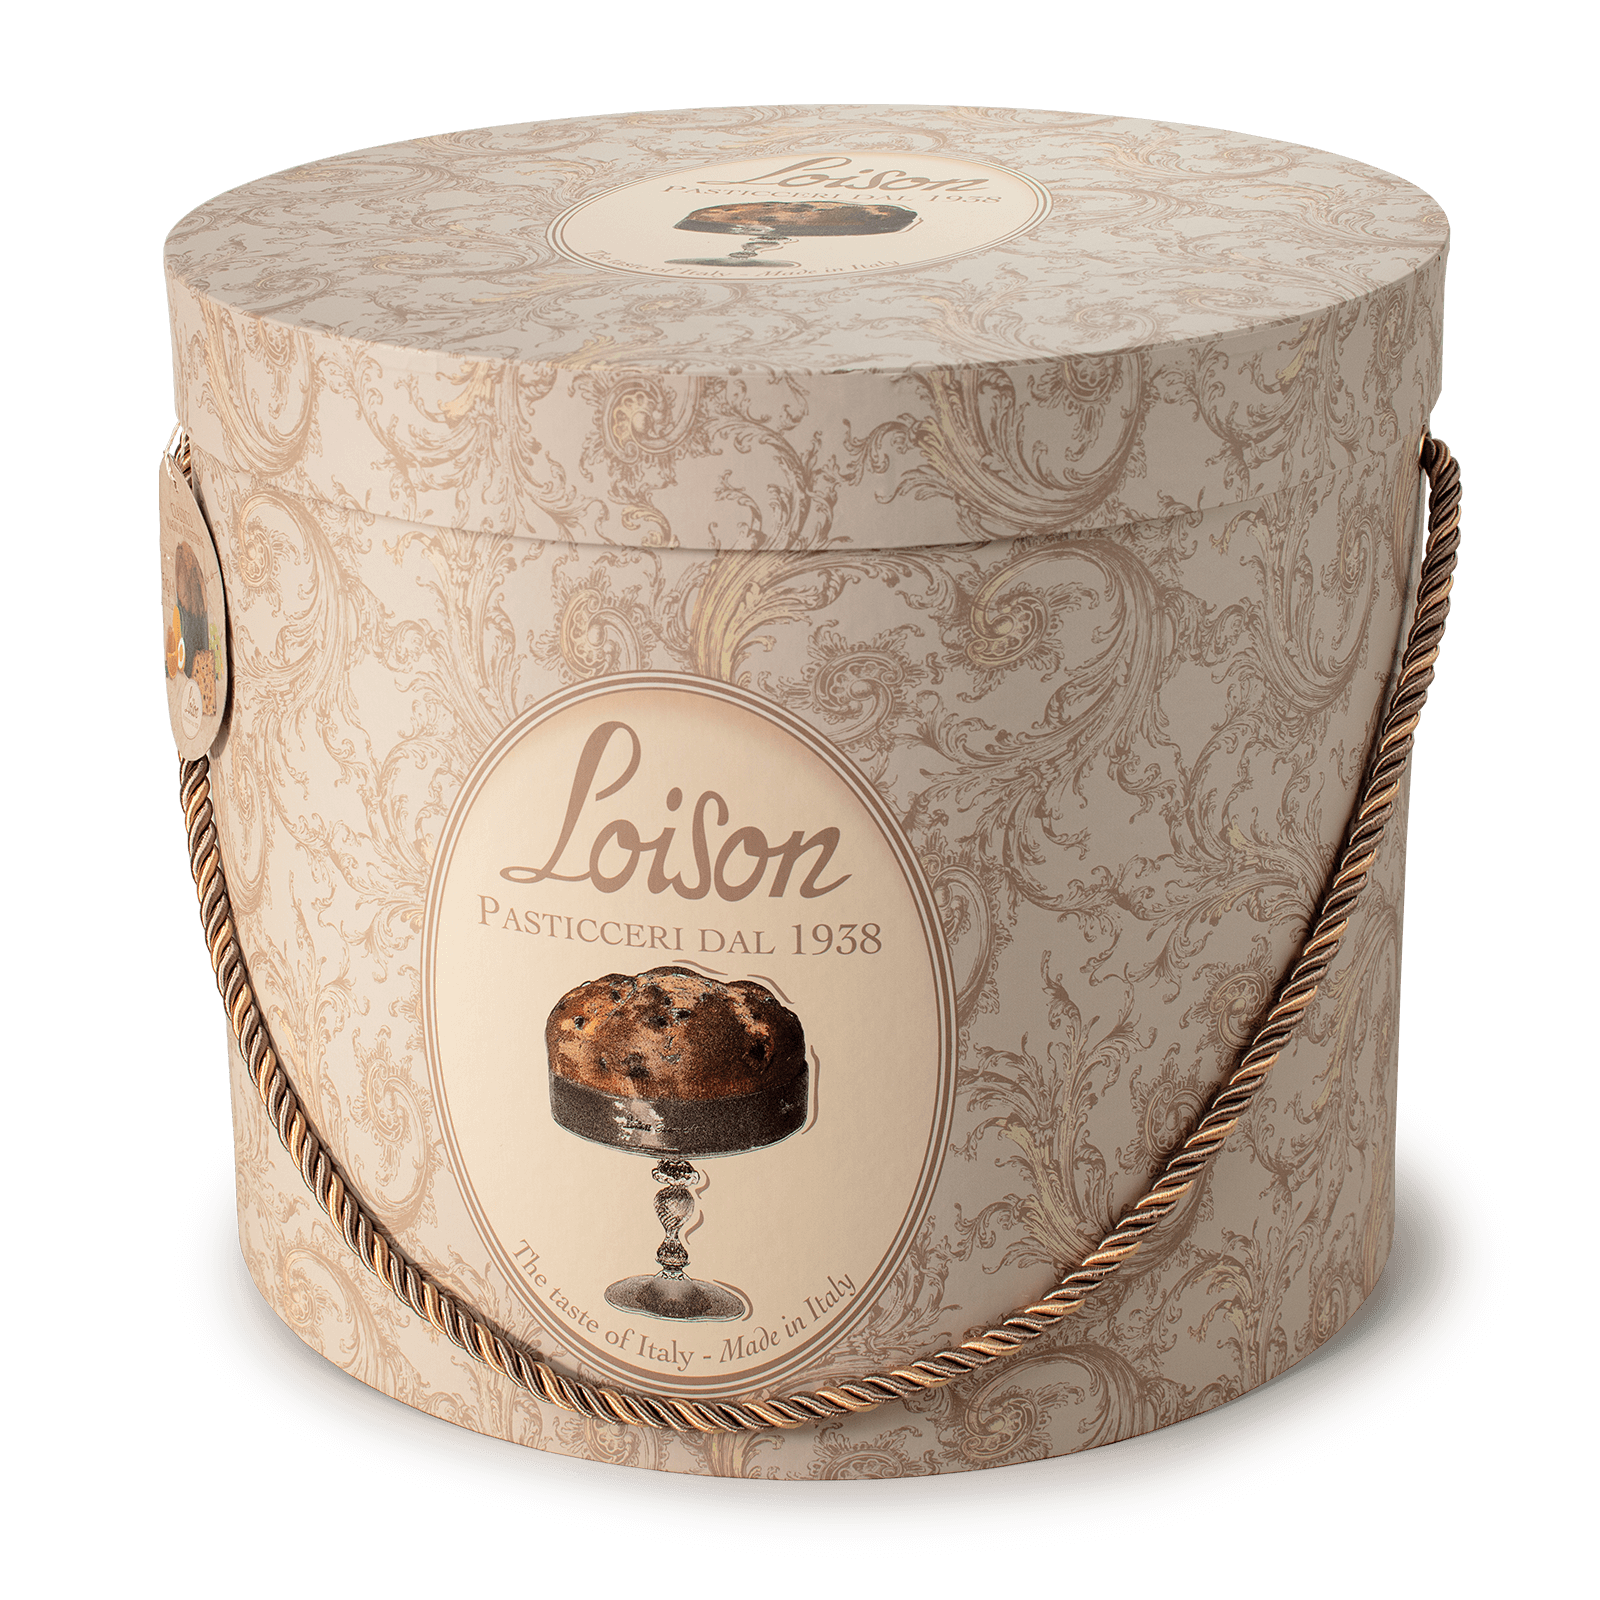 Classic Giant Panettone in a hat box Loison 5kg